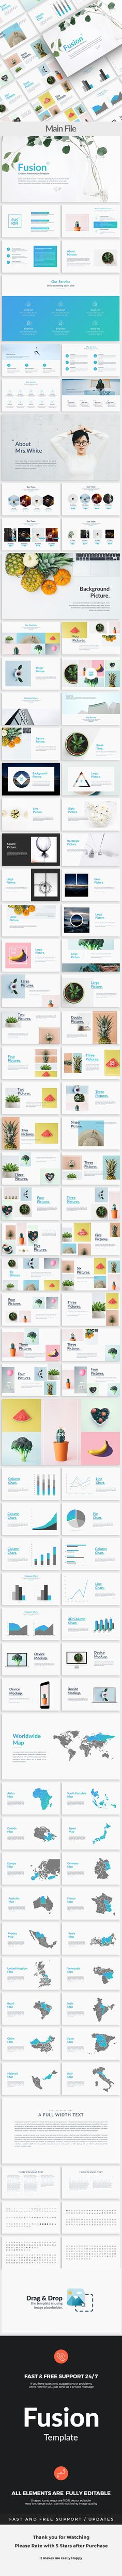 Fusion Creative Keynote Template — Keynote KEY #industrial #easy • Download ➝ https://graphicriver.net/item/fusion-creative-keynote-template/19201911?ref=pxcr